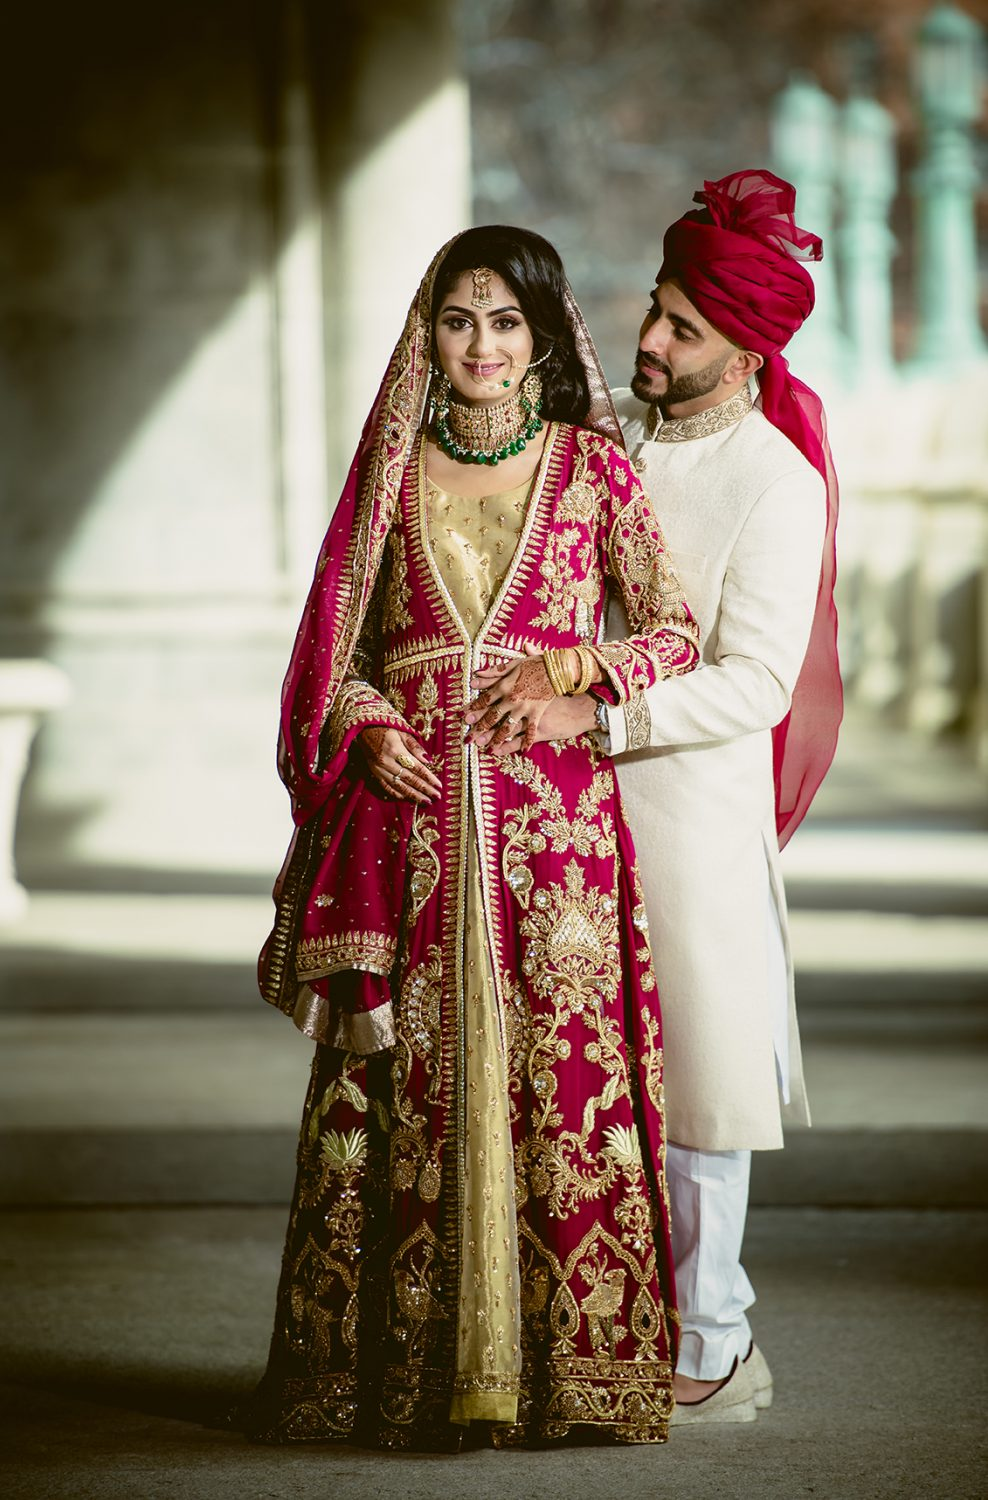 south_asian_wedding_photography_dhoom_studio_new_york85-e1573099219738 SOUTH ASIAN WEDDINGS